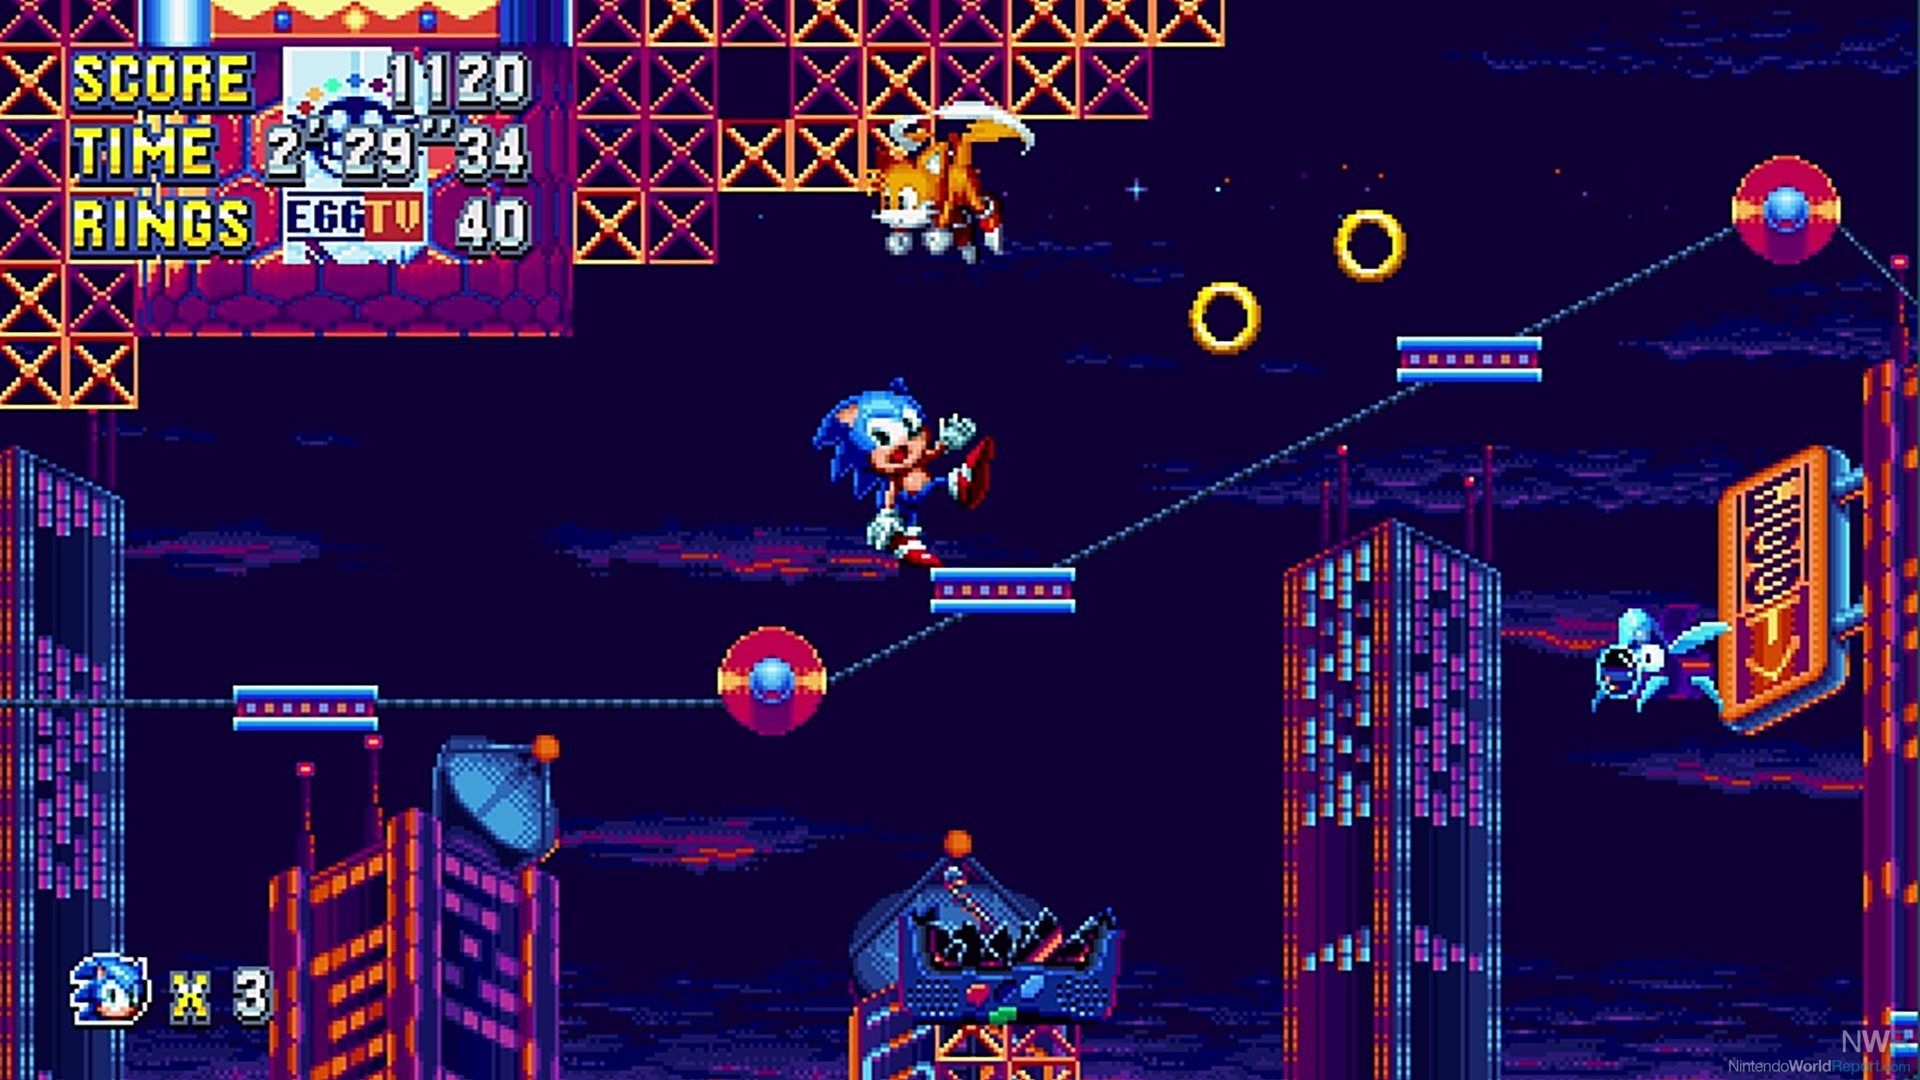 Sonic Mania Release Date Confirmed with New Trailer